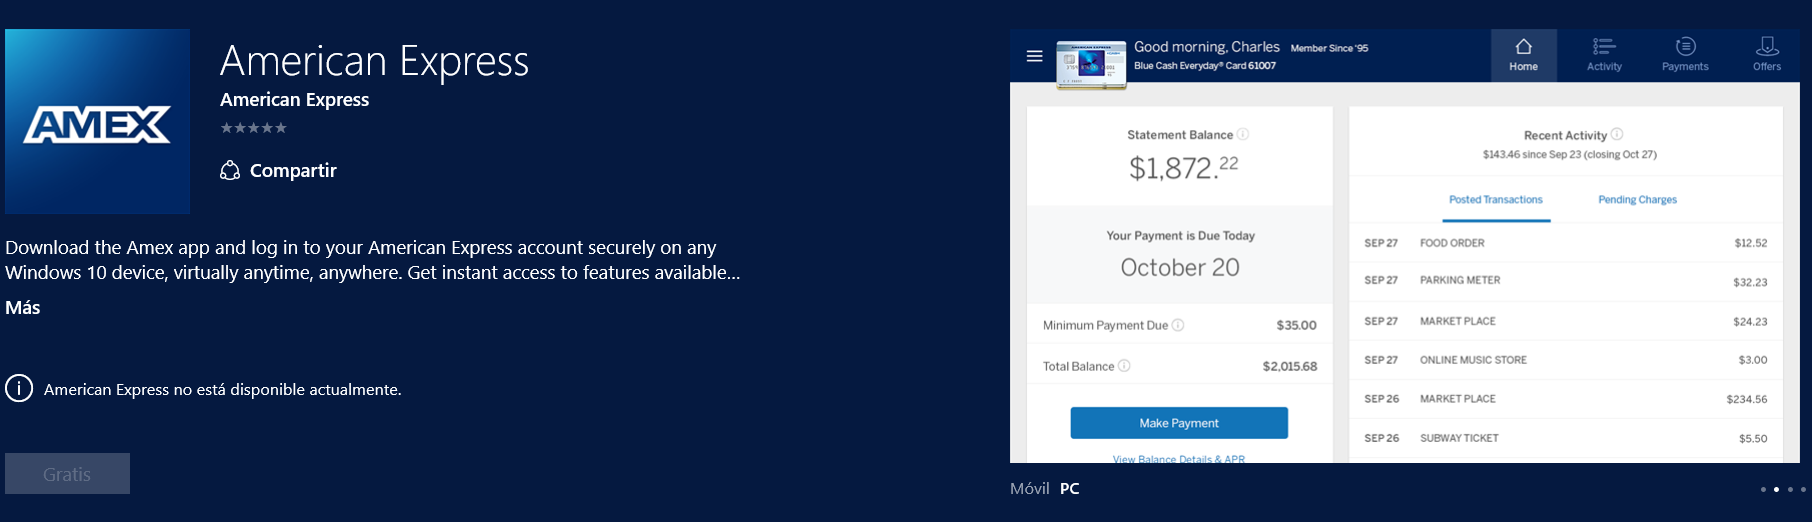 american express windows 10